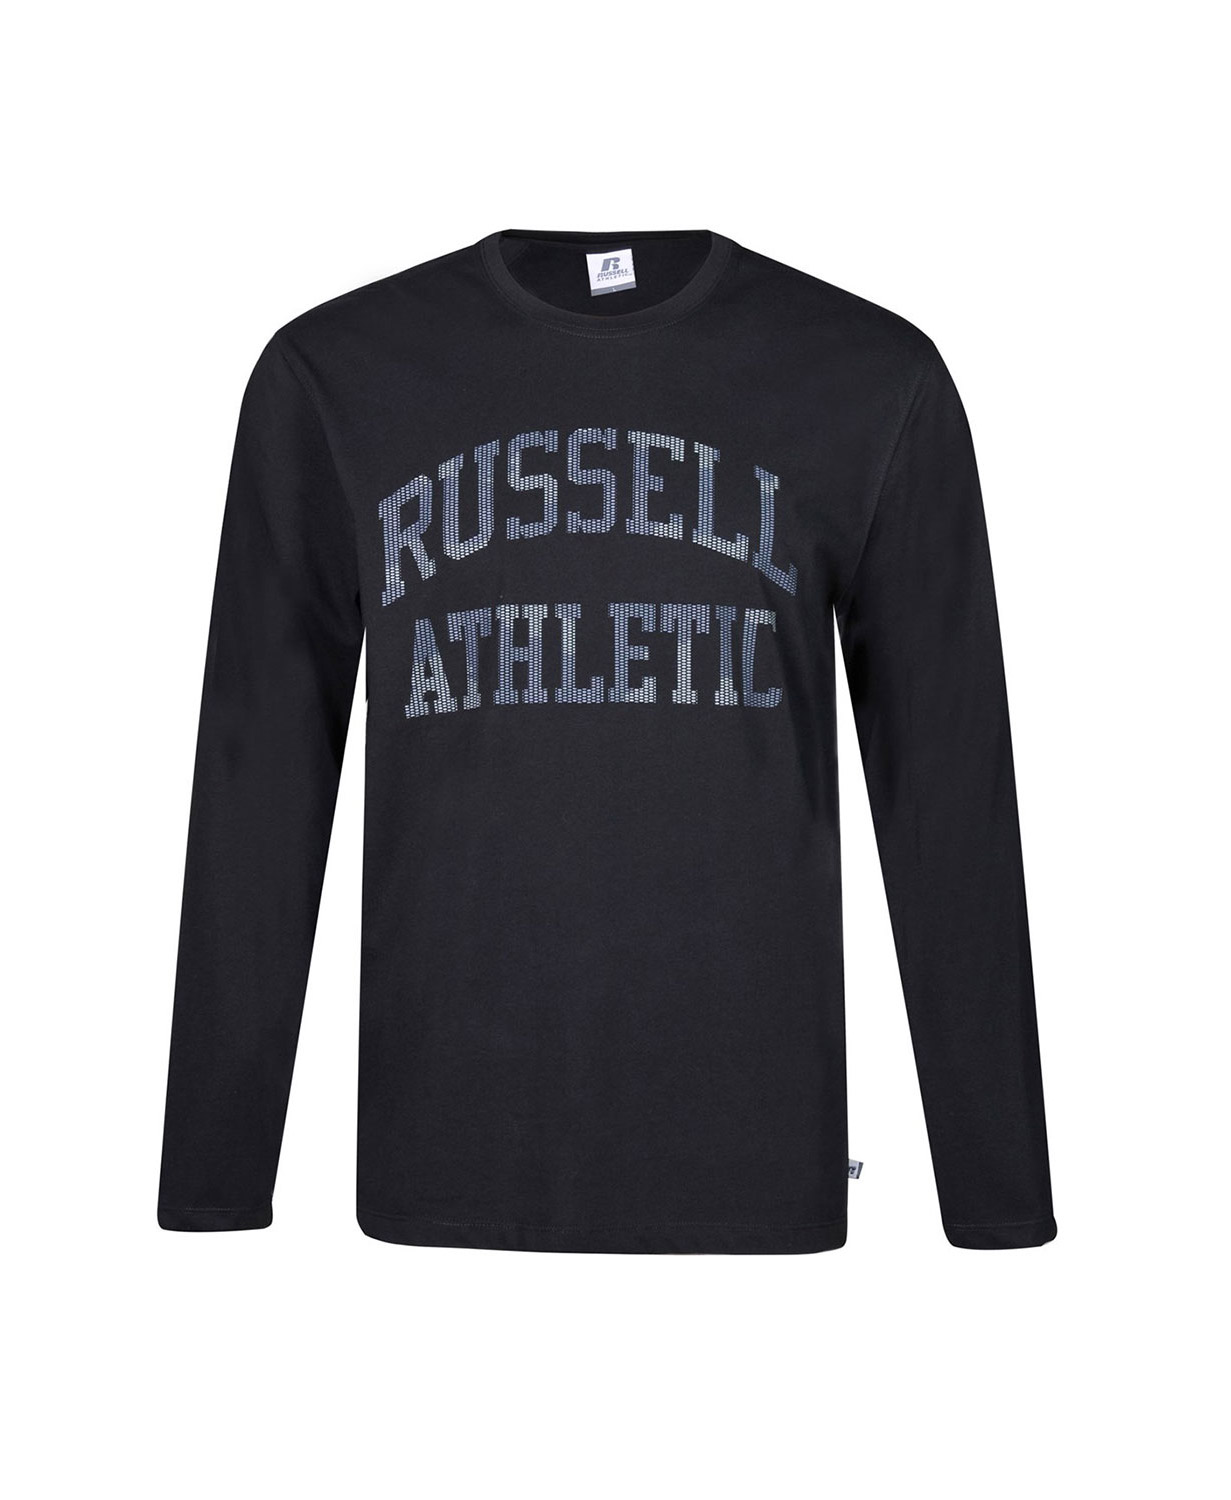 Russell Athletic L/S CREWNECK TEE SHIRT A0-087-2-099 Μαύρο